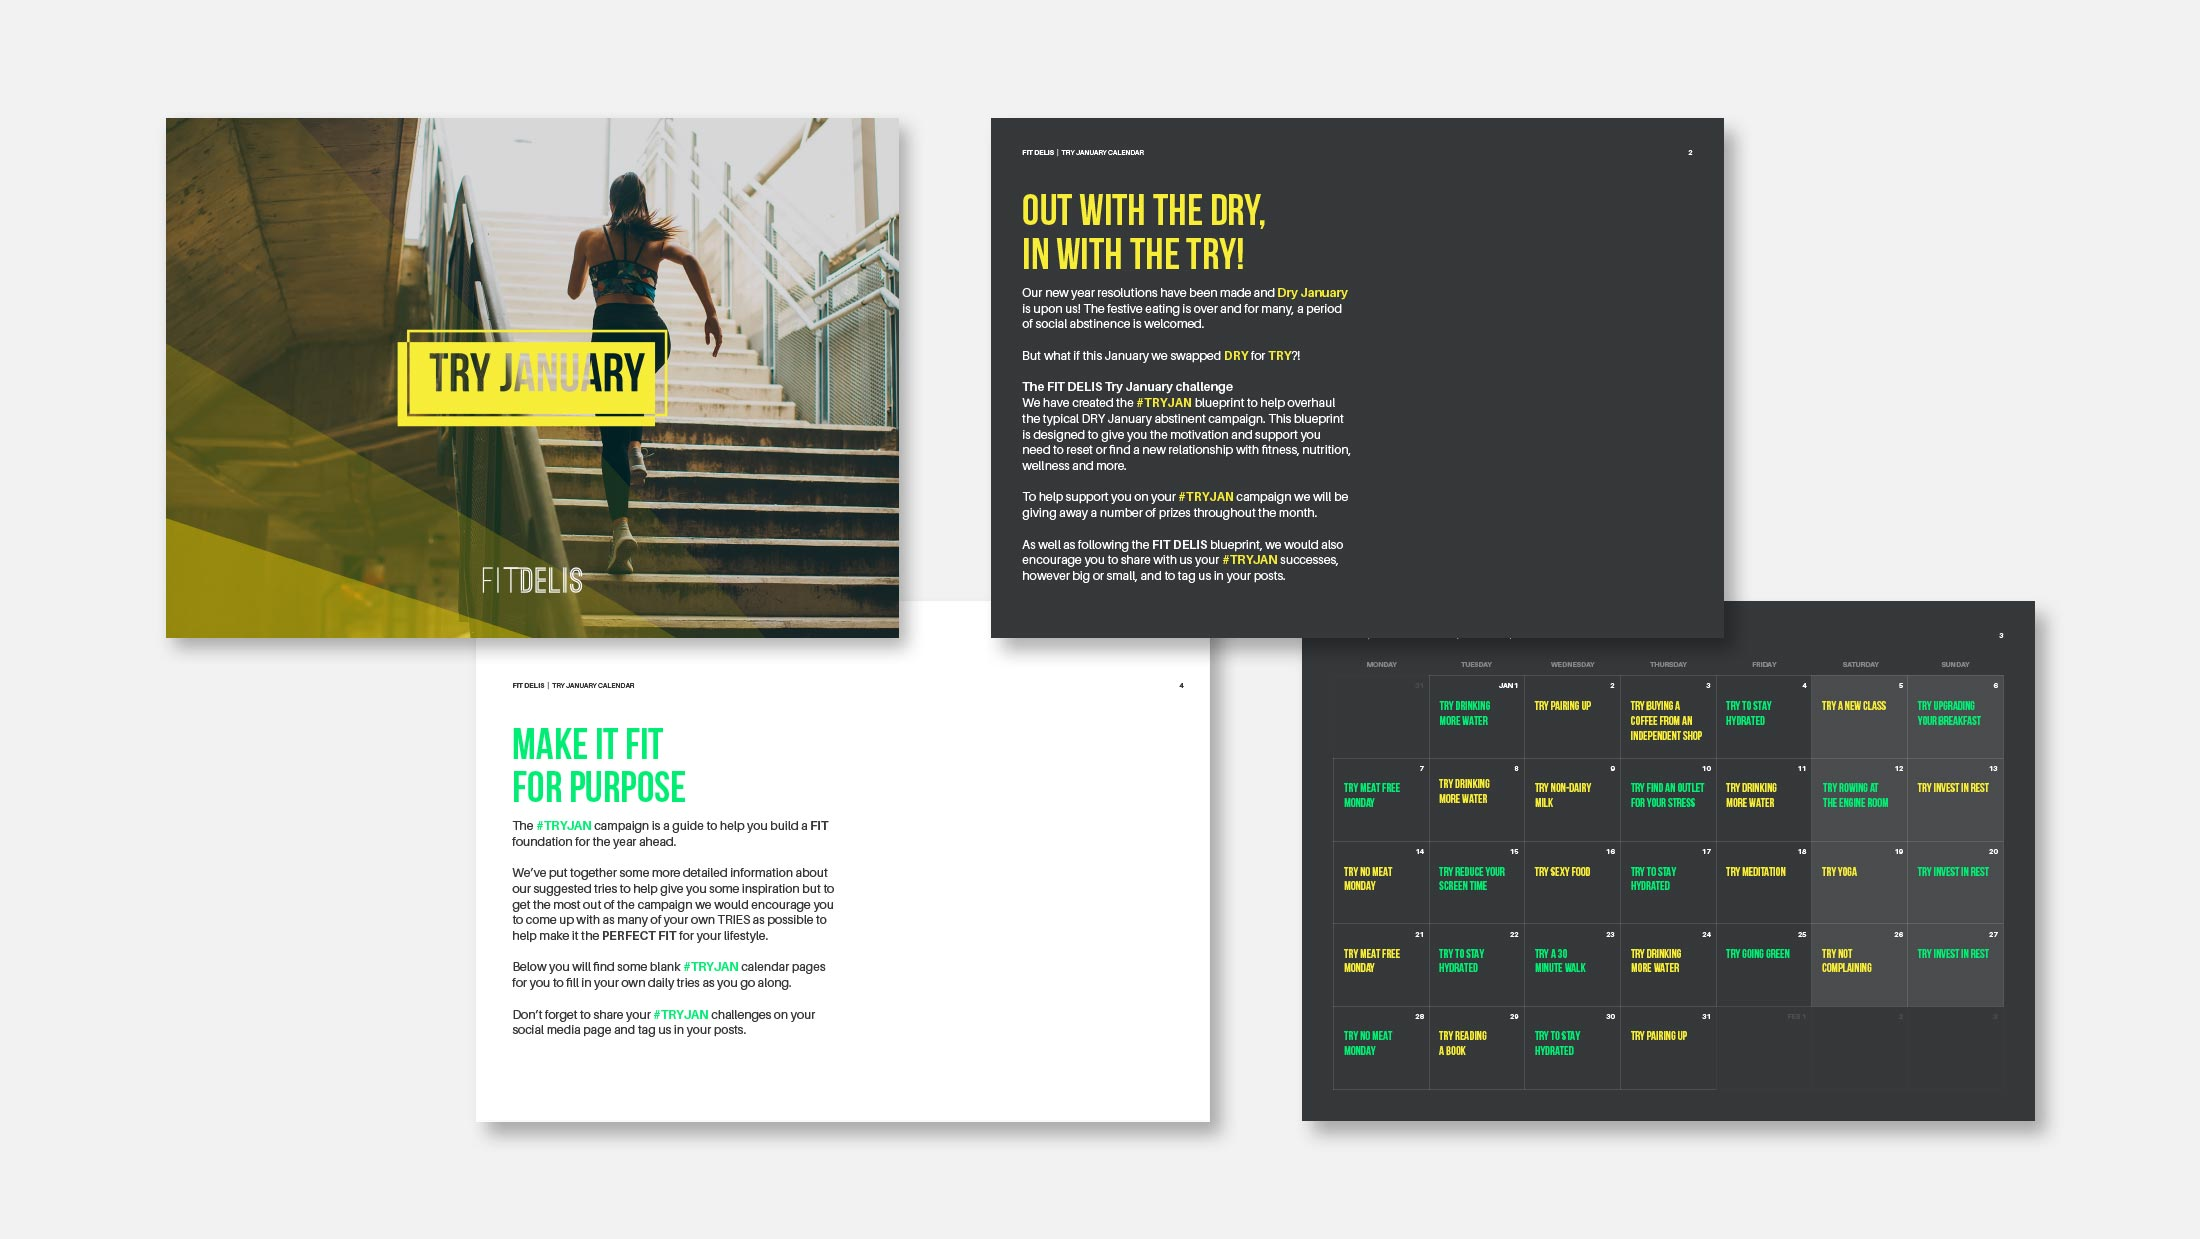 Four pages from the PDF guide for Fit Delis' Try January campaign